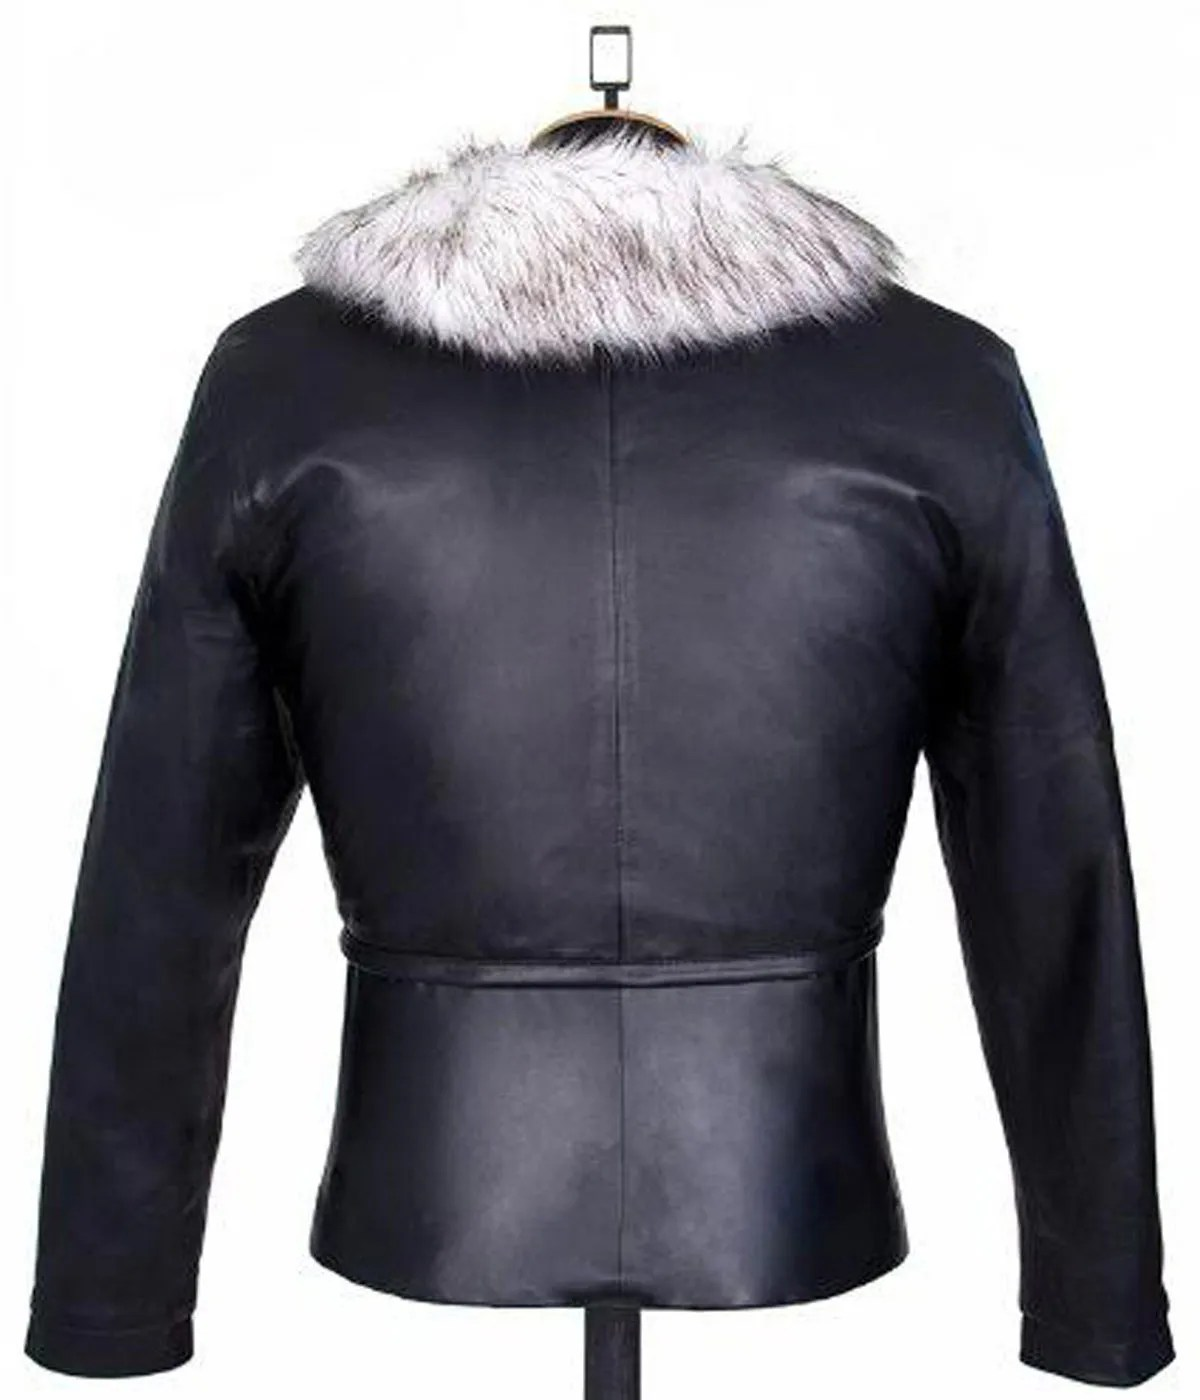 squall-leonhart-ff8-leather-jacket